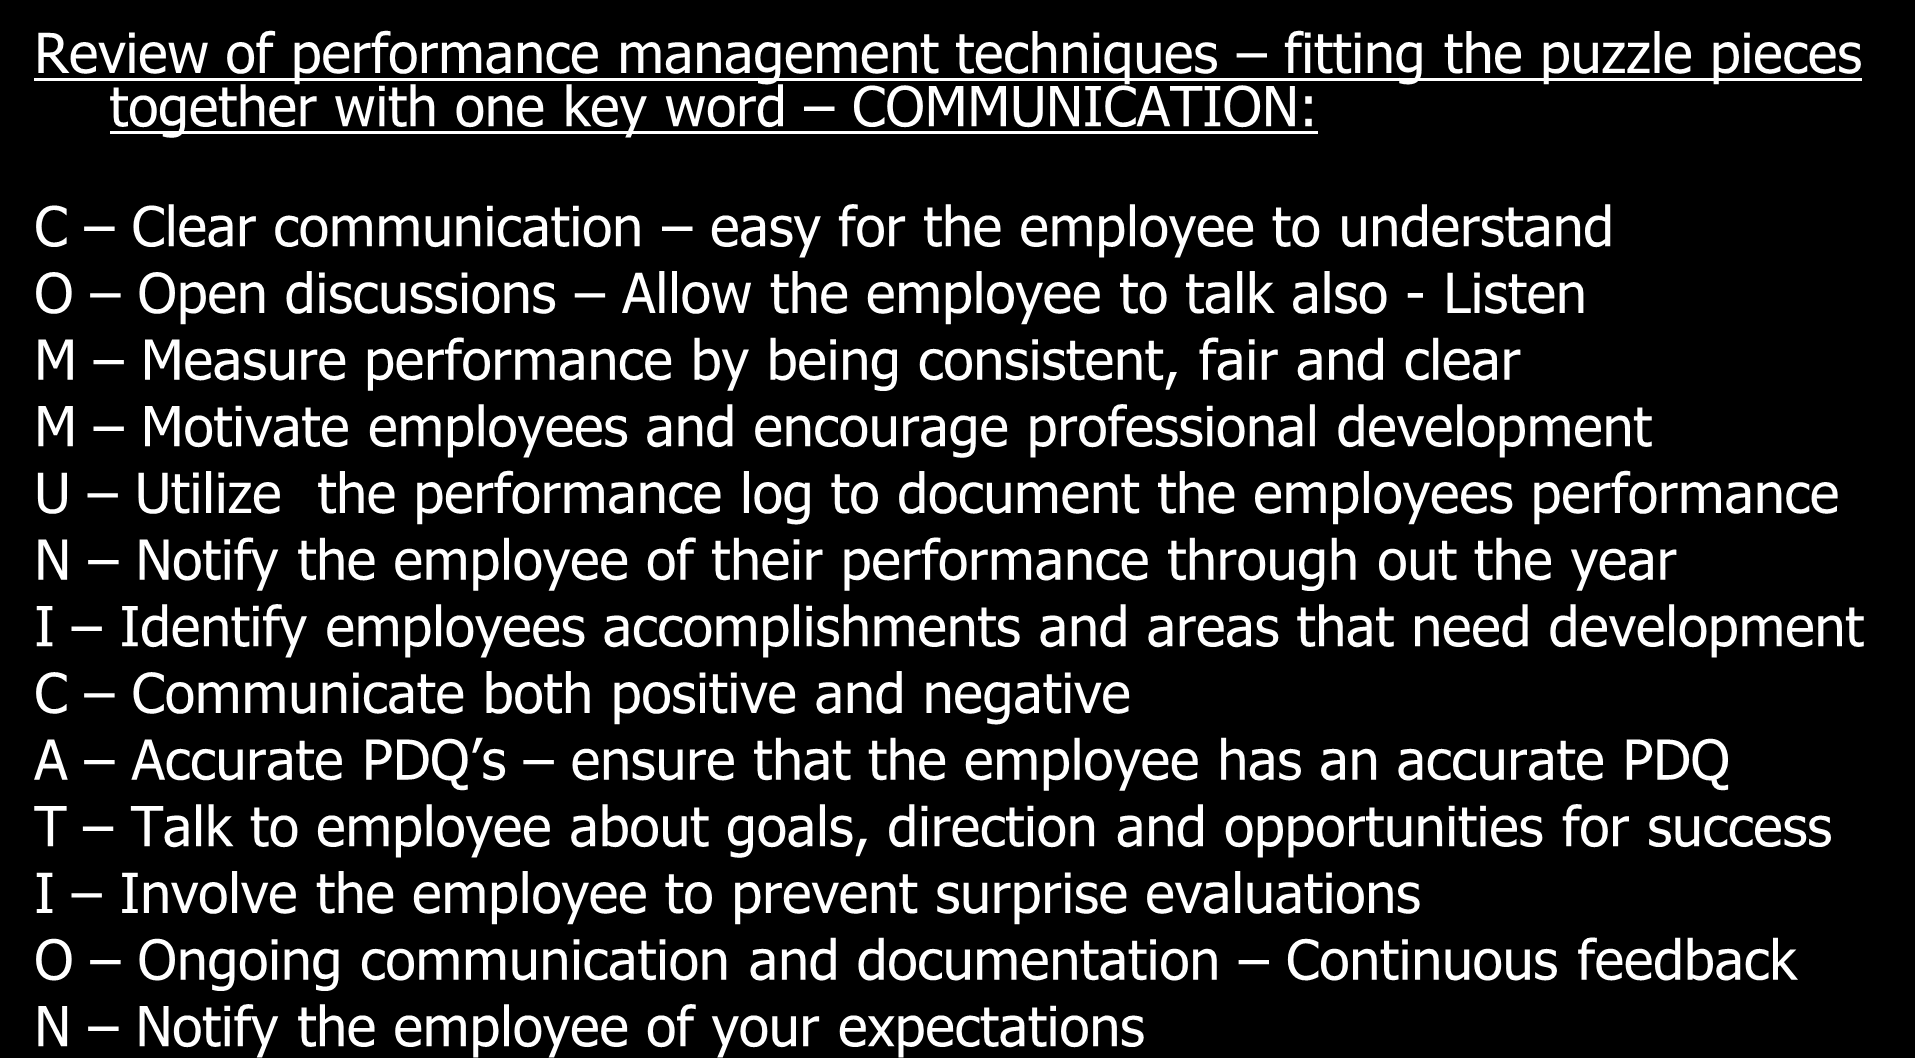 Review of performance management techniques fitting the puzzle pieces together with one key word COMMUNICATION: C Clear communication easy for the employee to understand O Open discussions Allow the